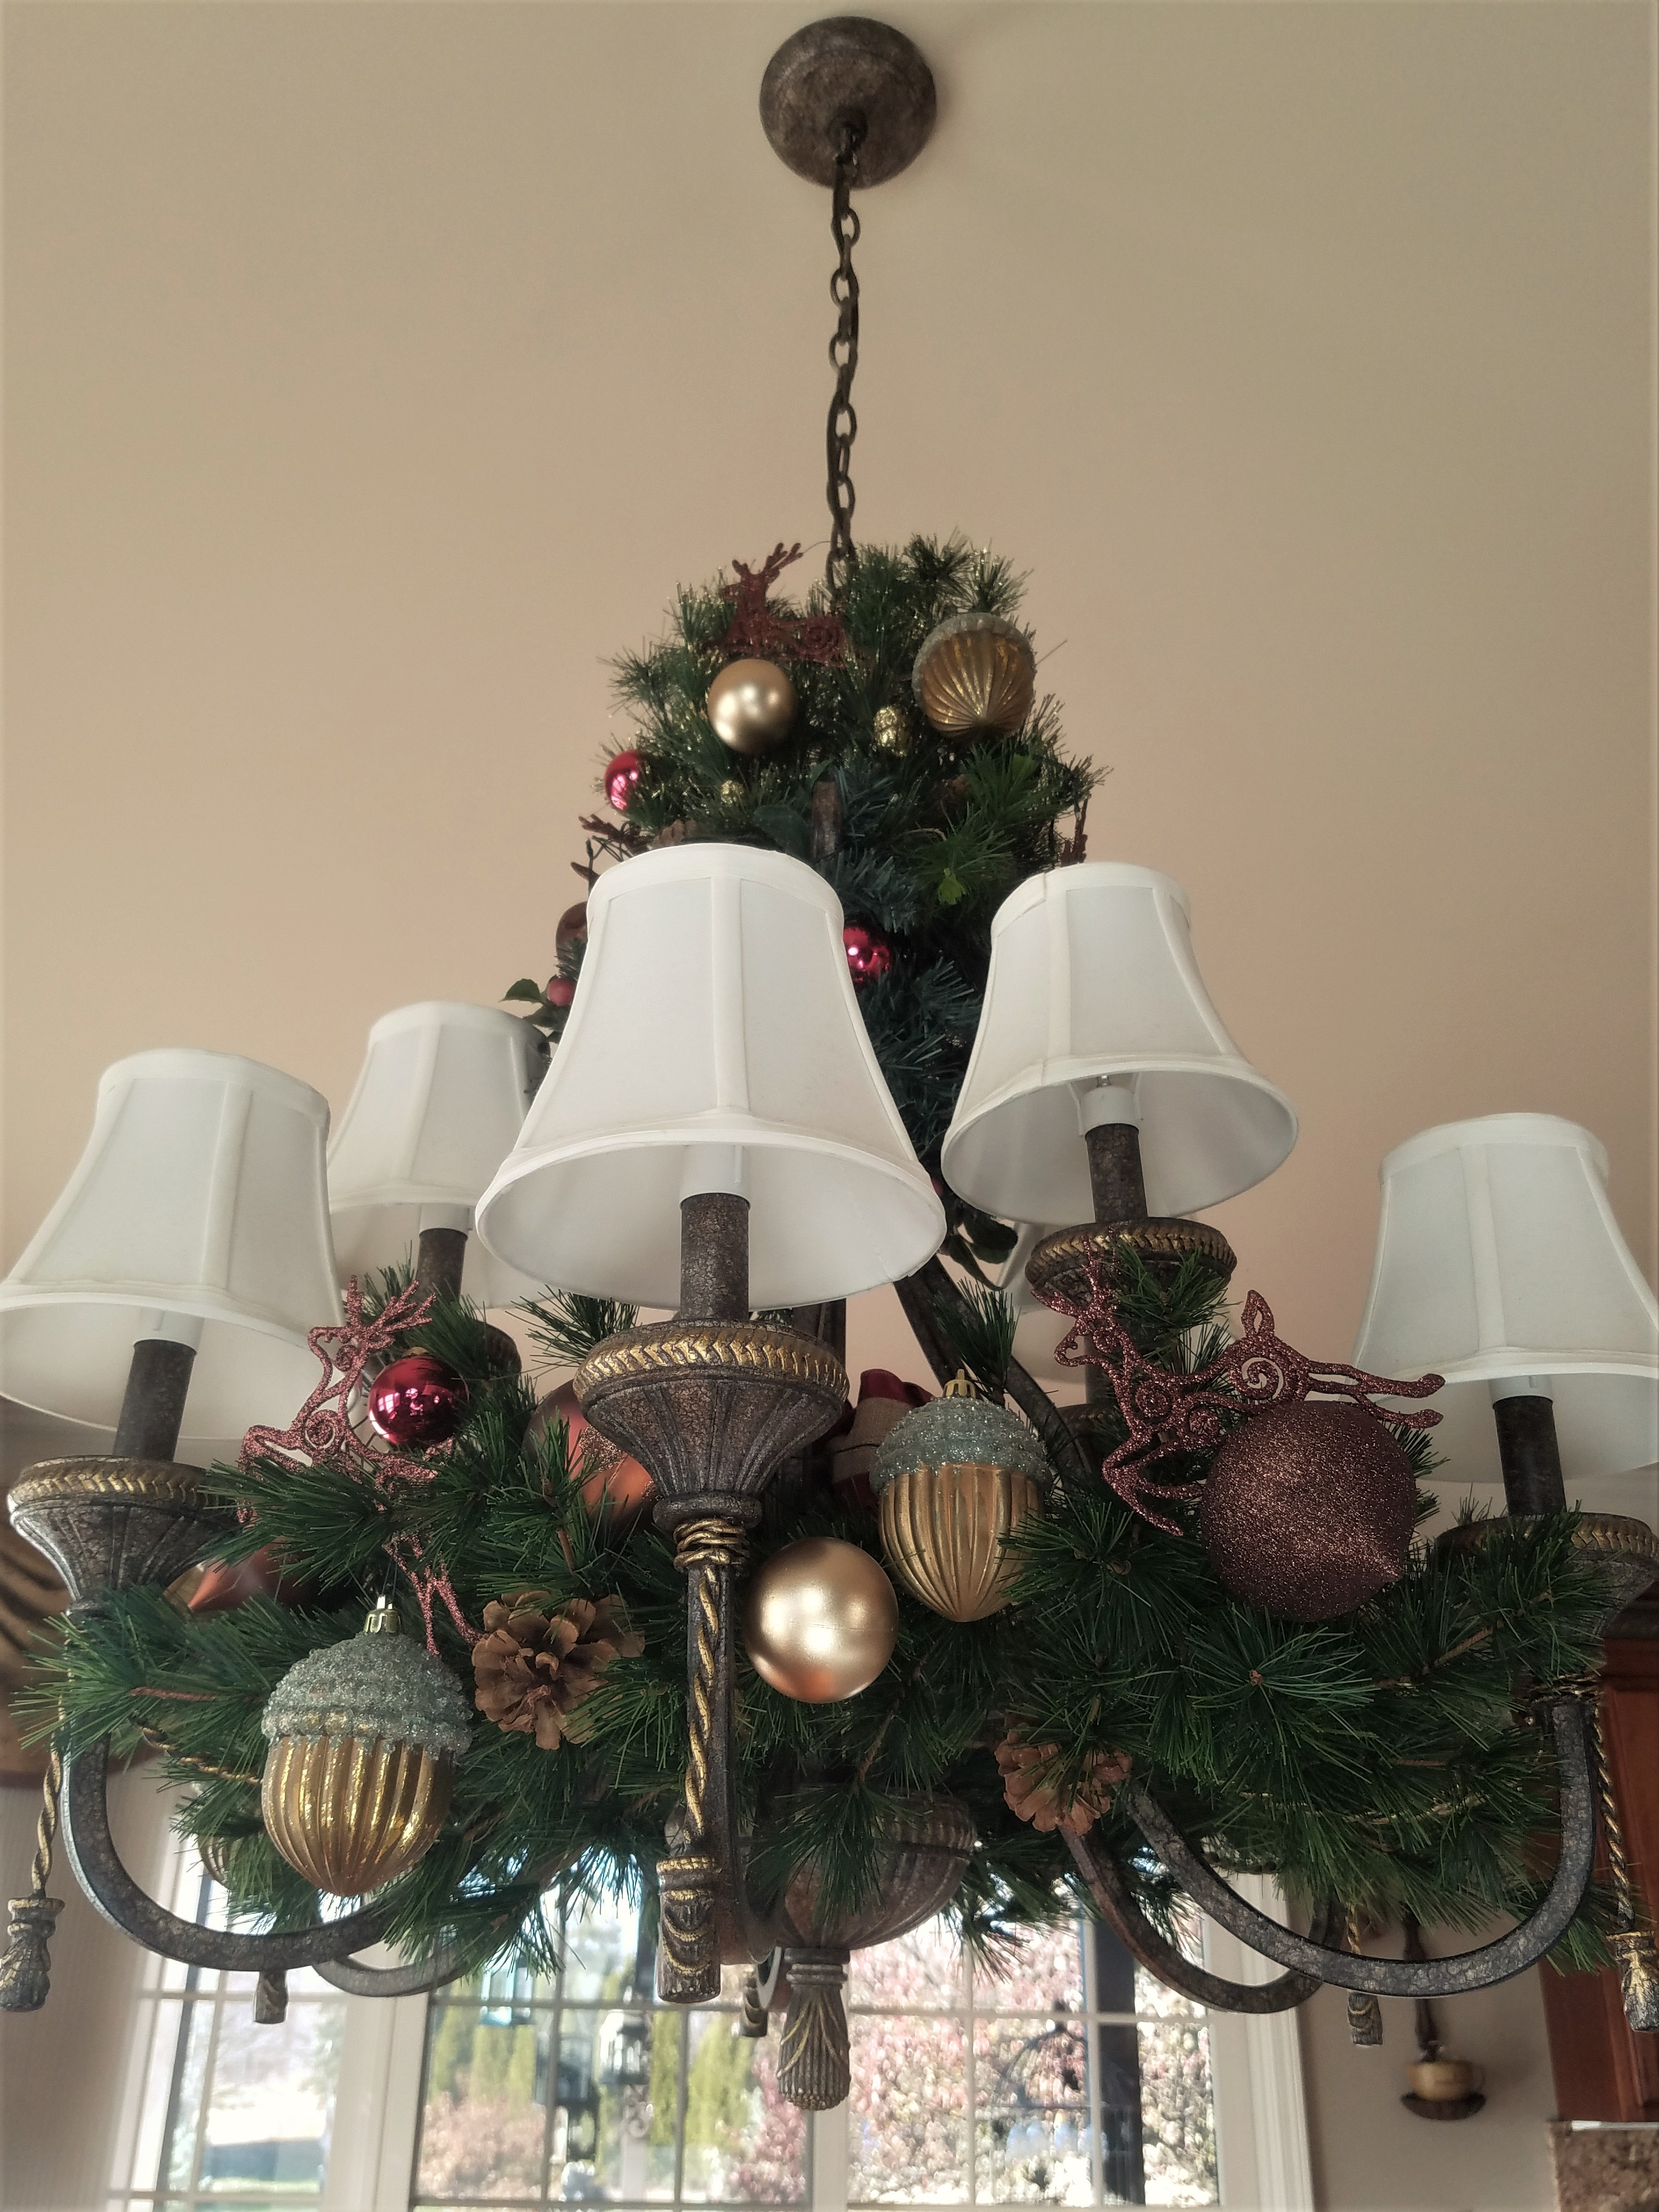 How to decorate a holiday chandelier for christmas renee romeo aloadofball Image collections